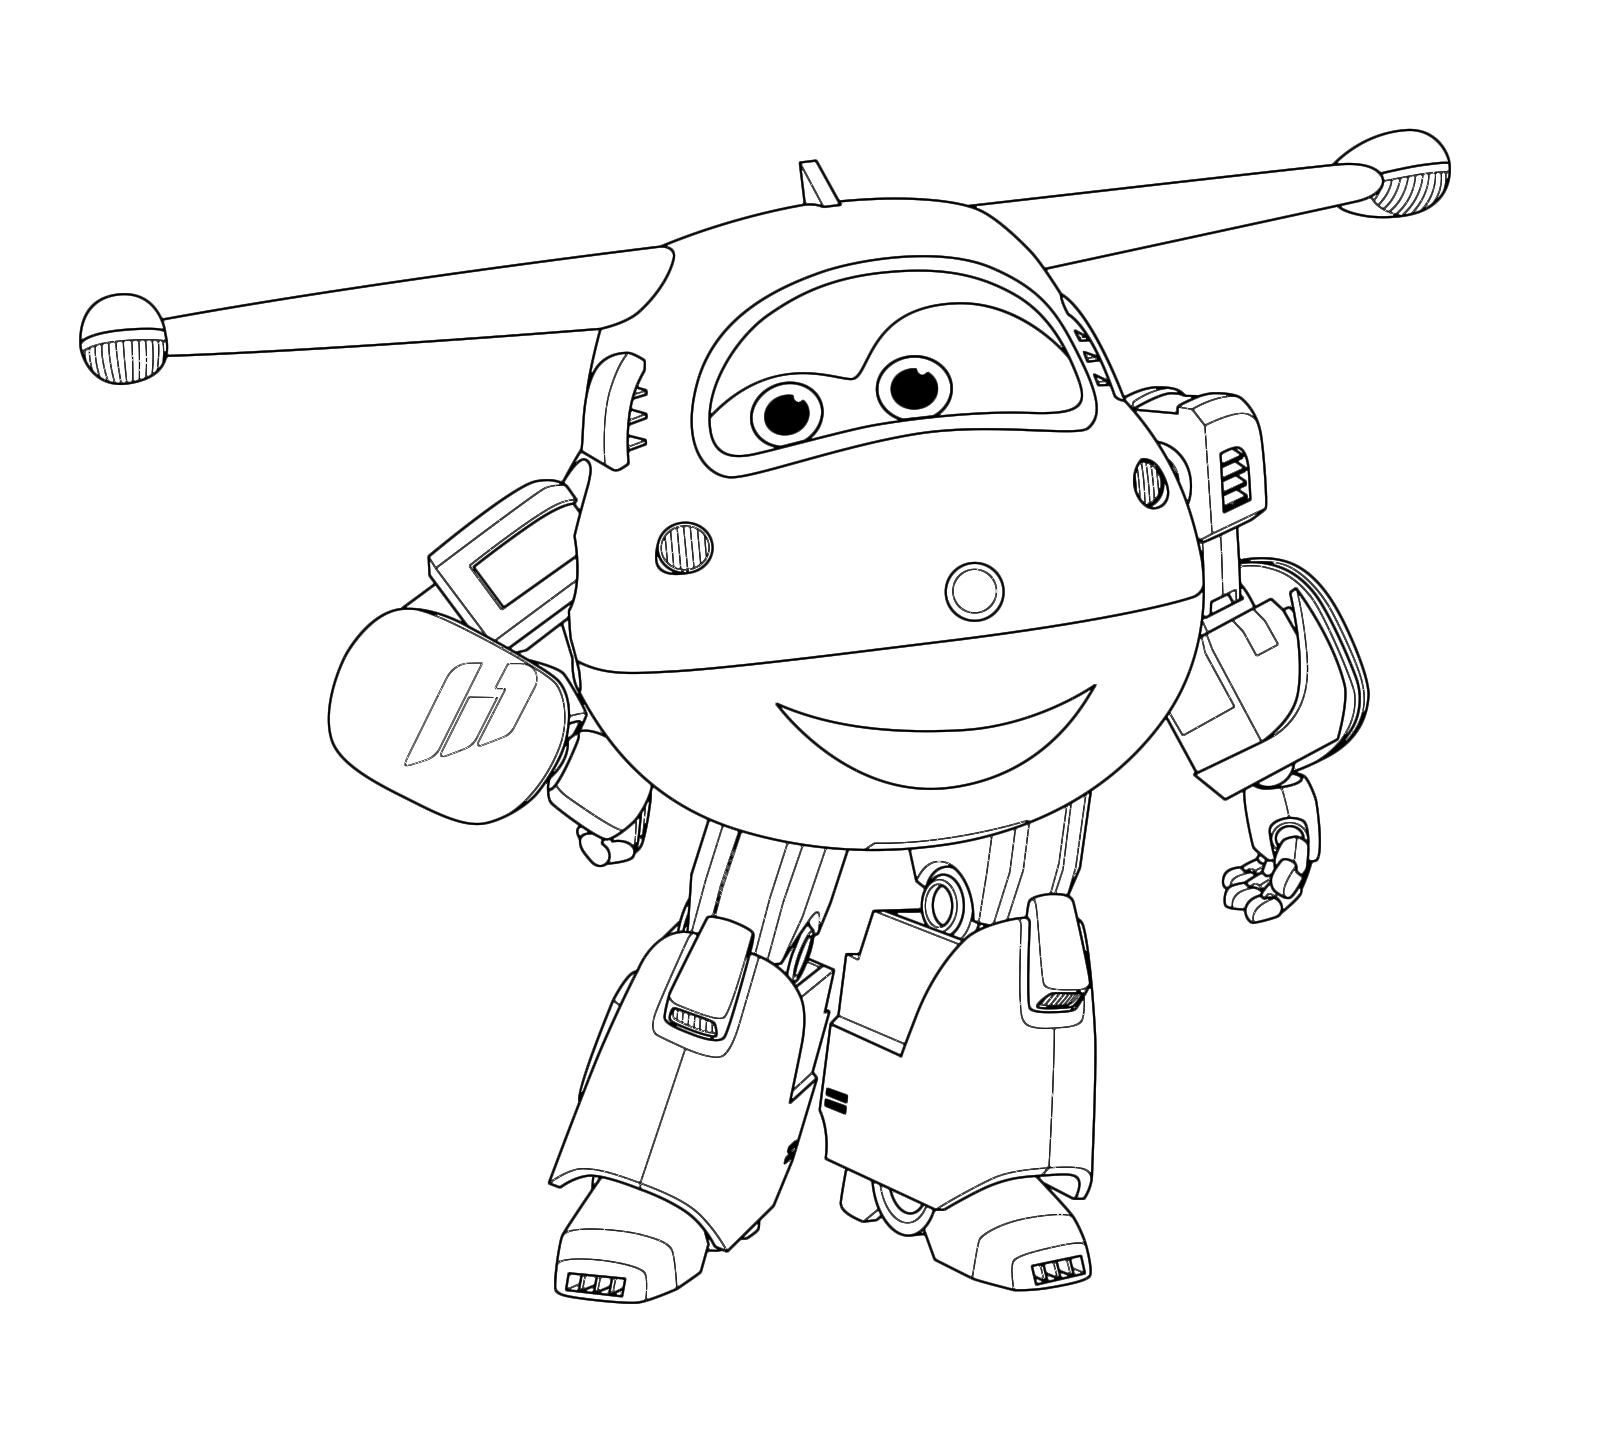 Super Wings Coloring Pages Coloringnori Coloring Pages For Kids